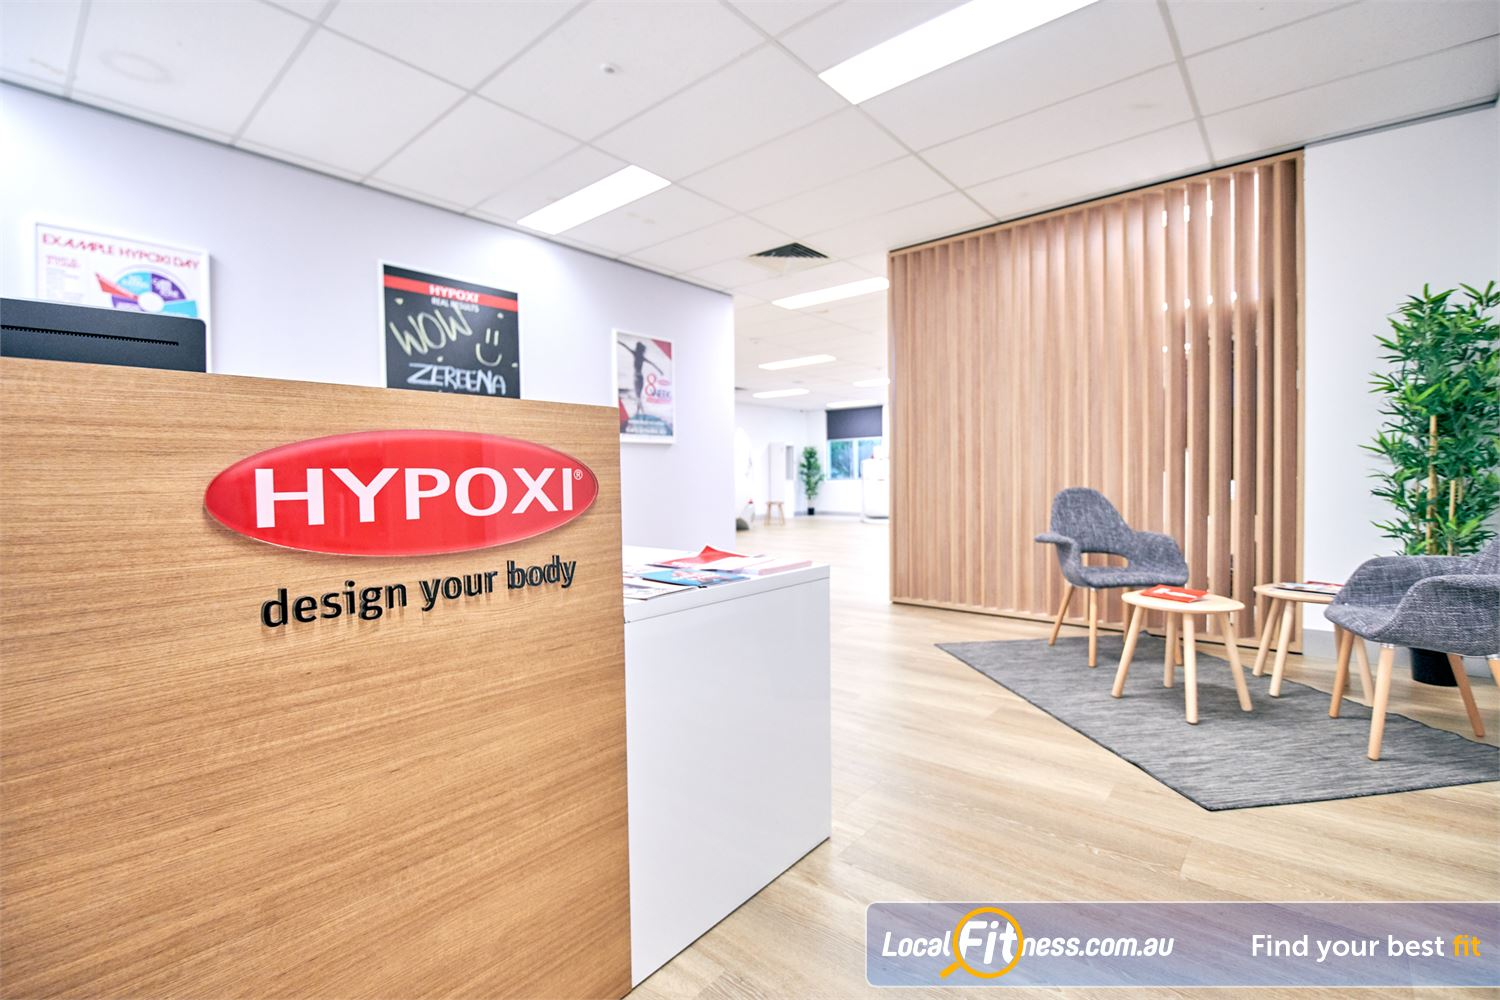 HYPOXI Weight Loss Jindalee Welcome to the HYPOXI Jindalee weight-loss studio.